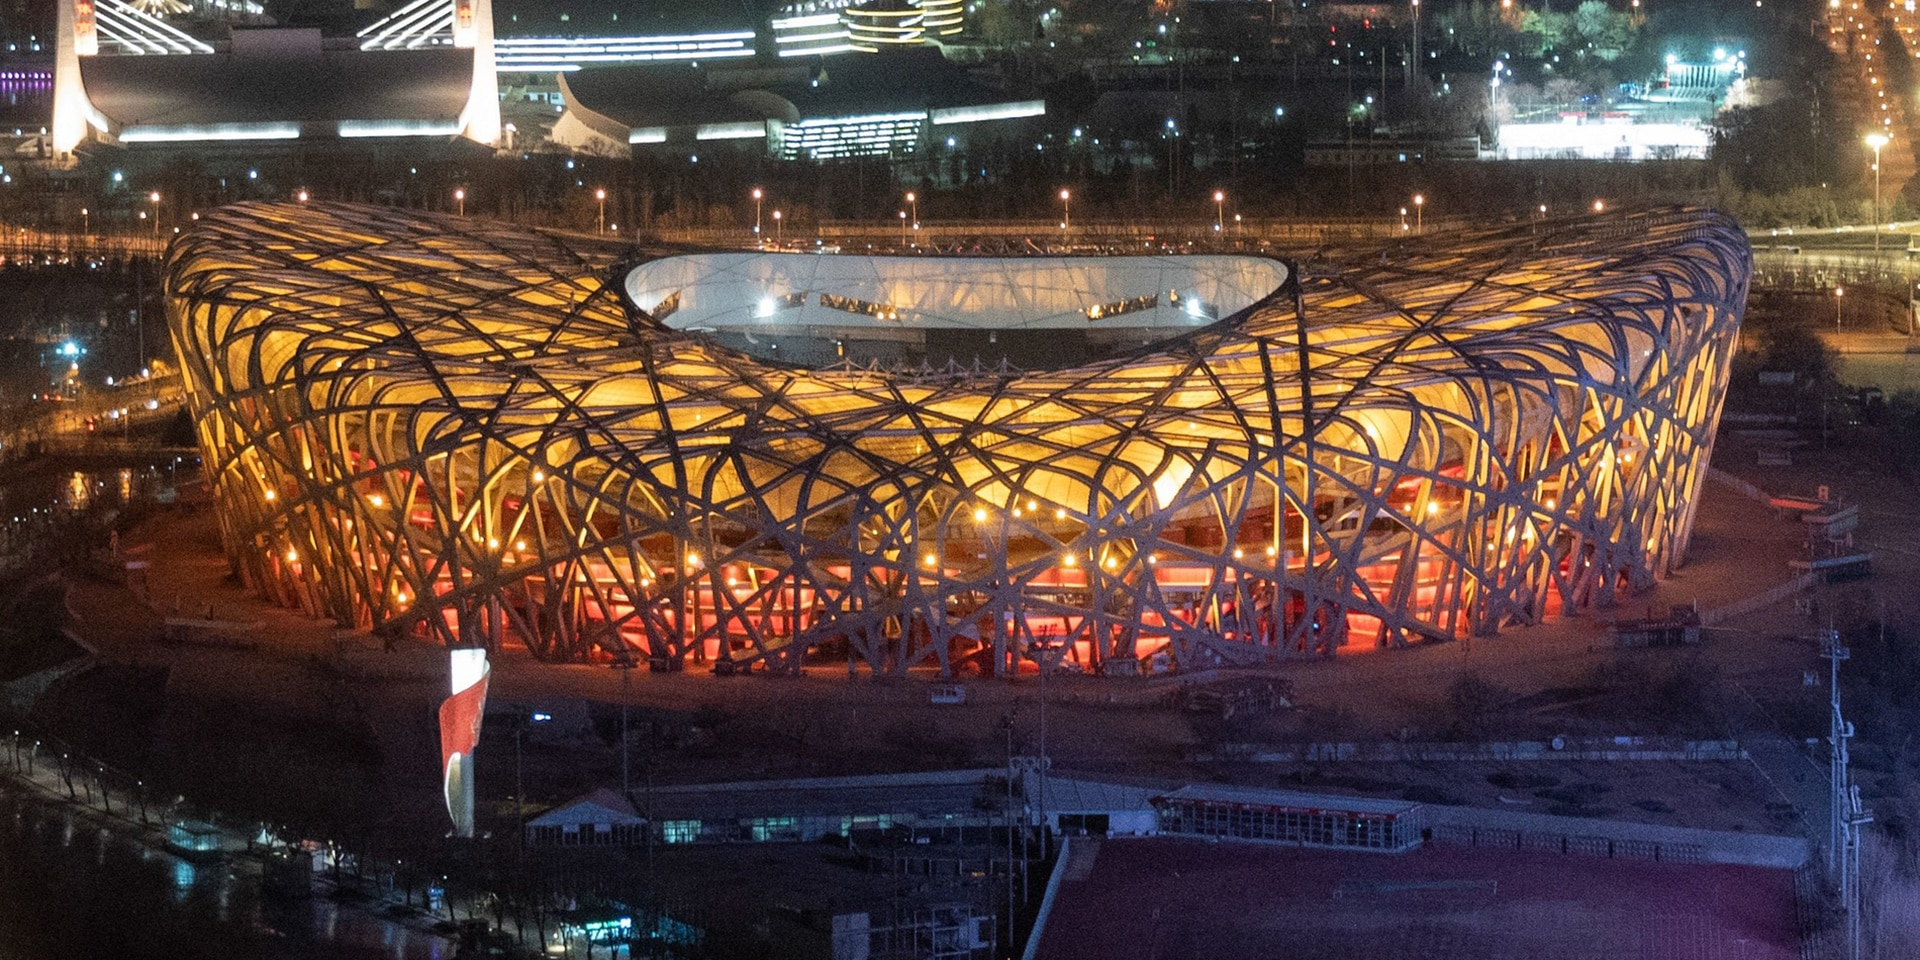 An aerial view of the Bird's Nest Stadium in Beijing.